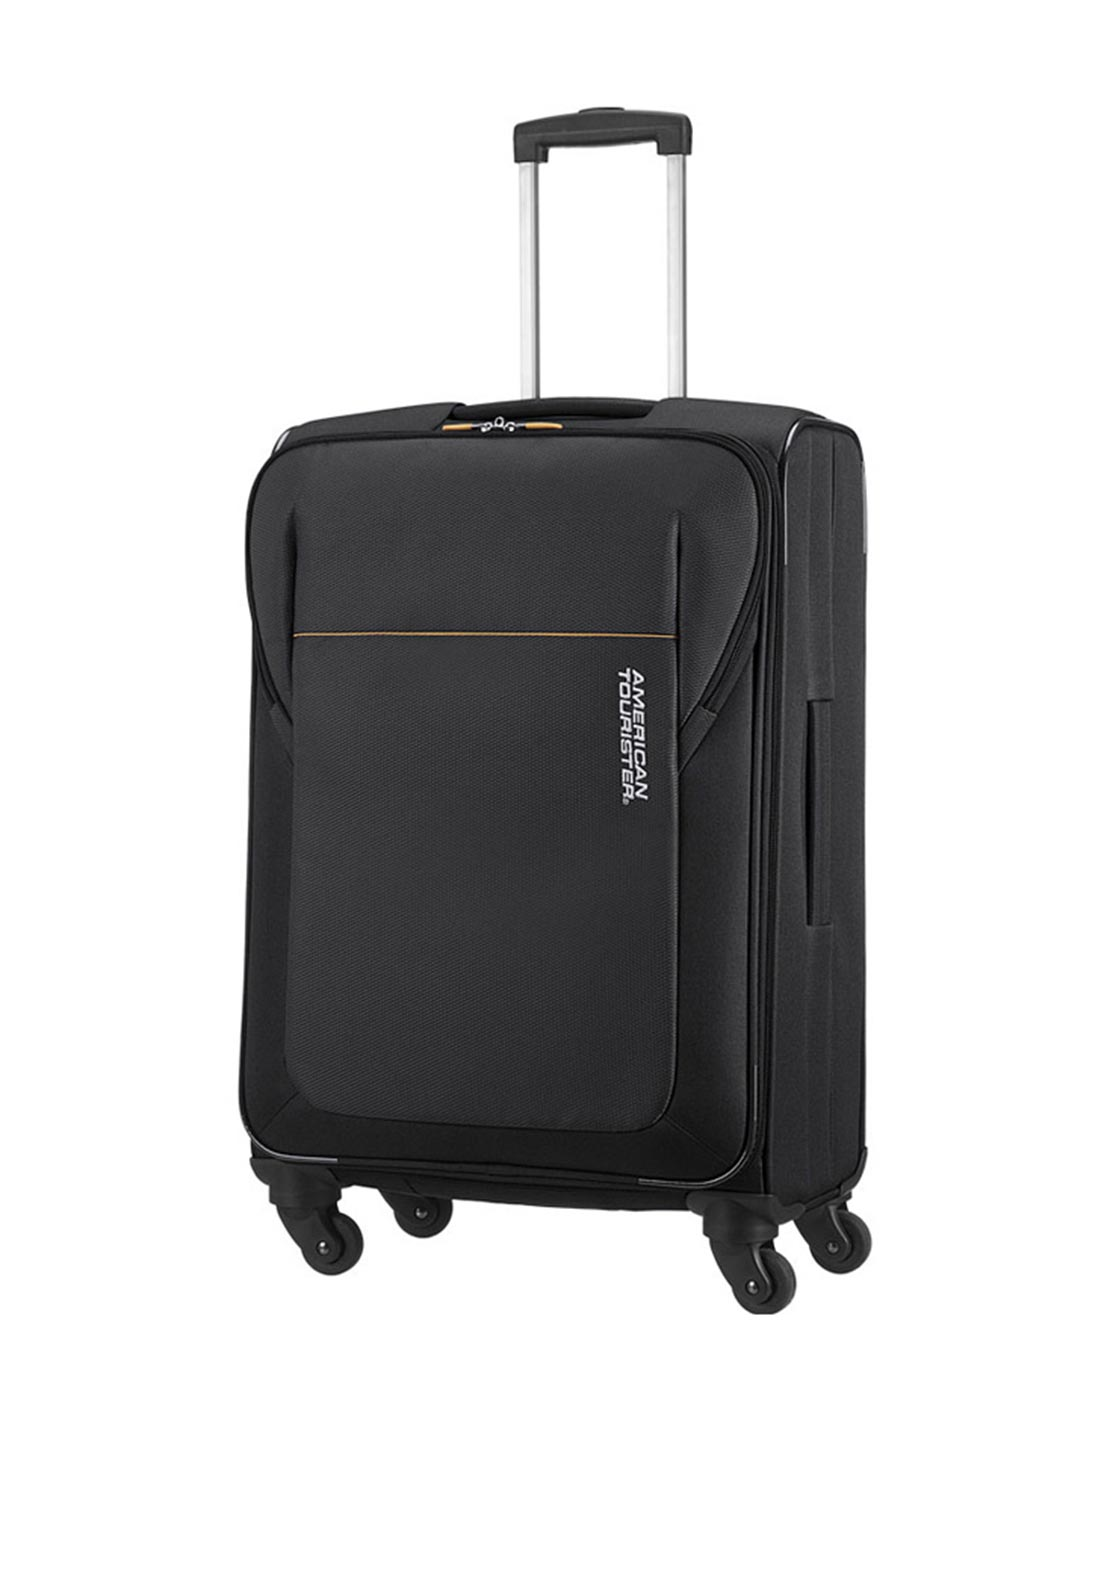 American Tourister San Francisco Spinner Medium 66cm Suitcase, Black